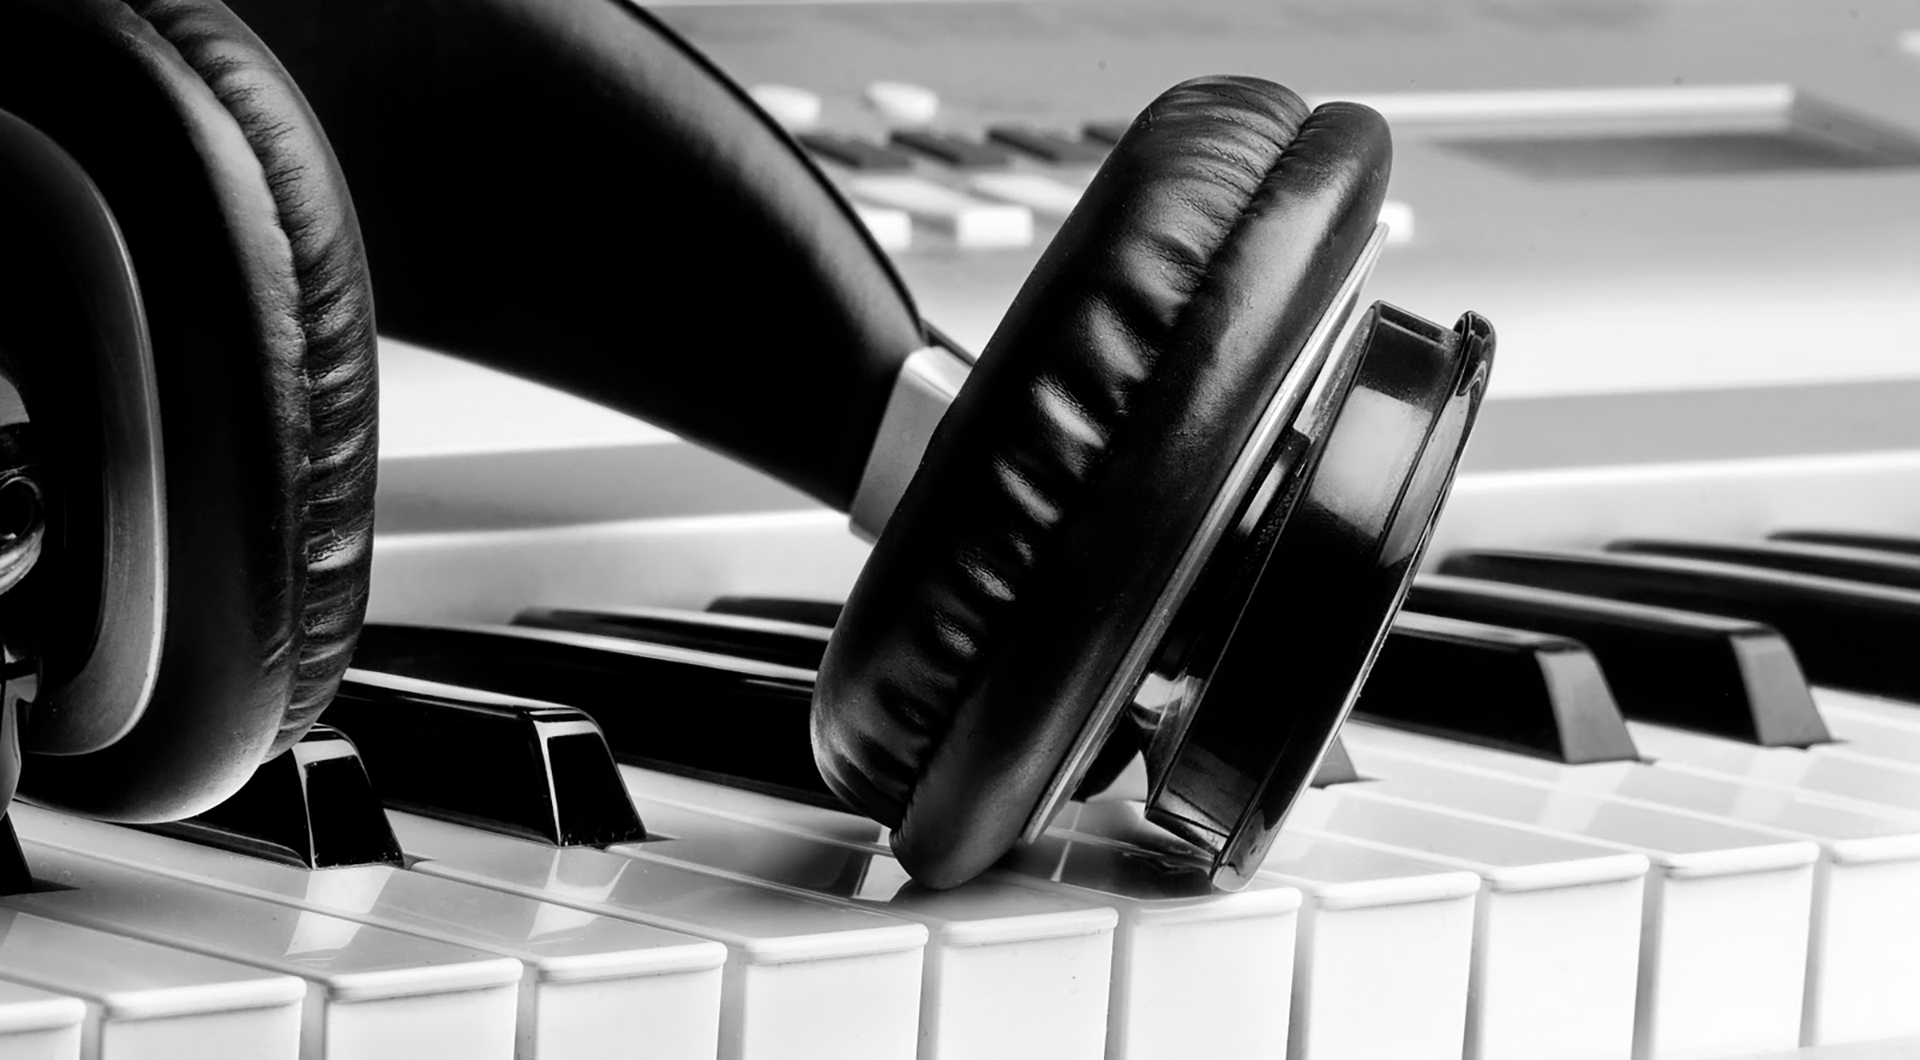 headphones-piano-music-for-ads